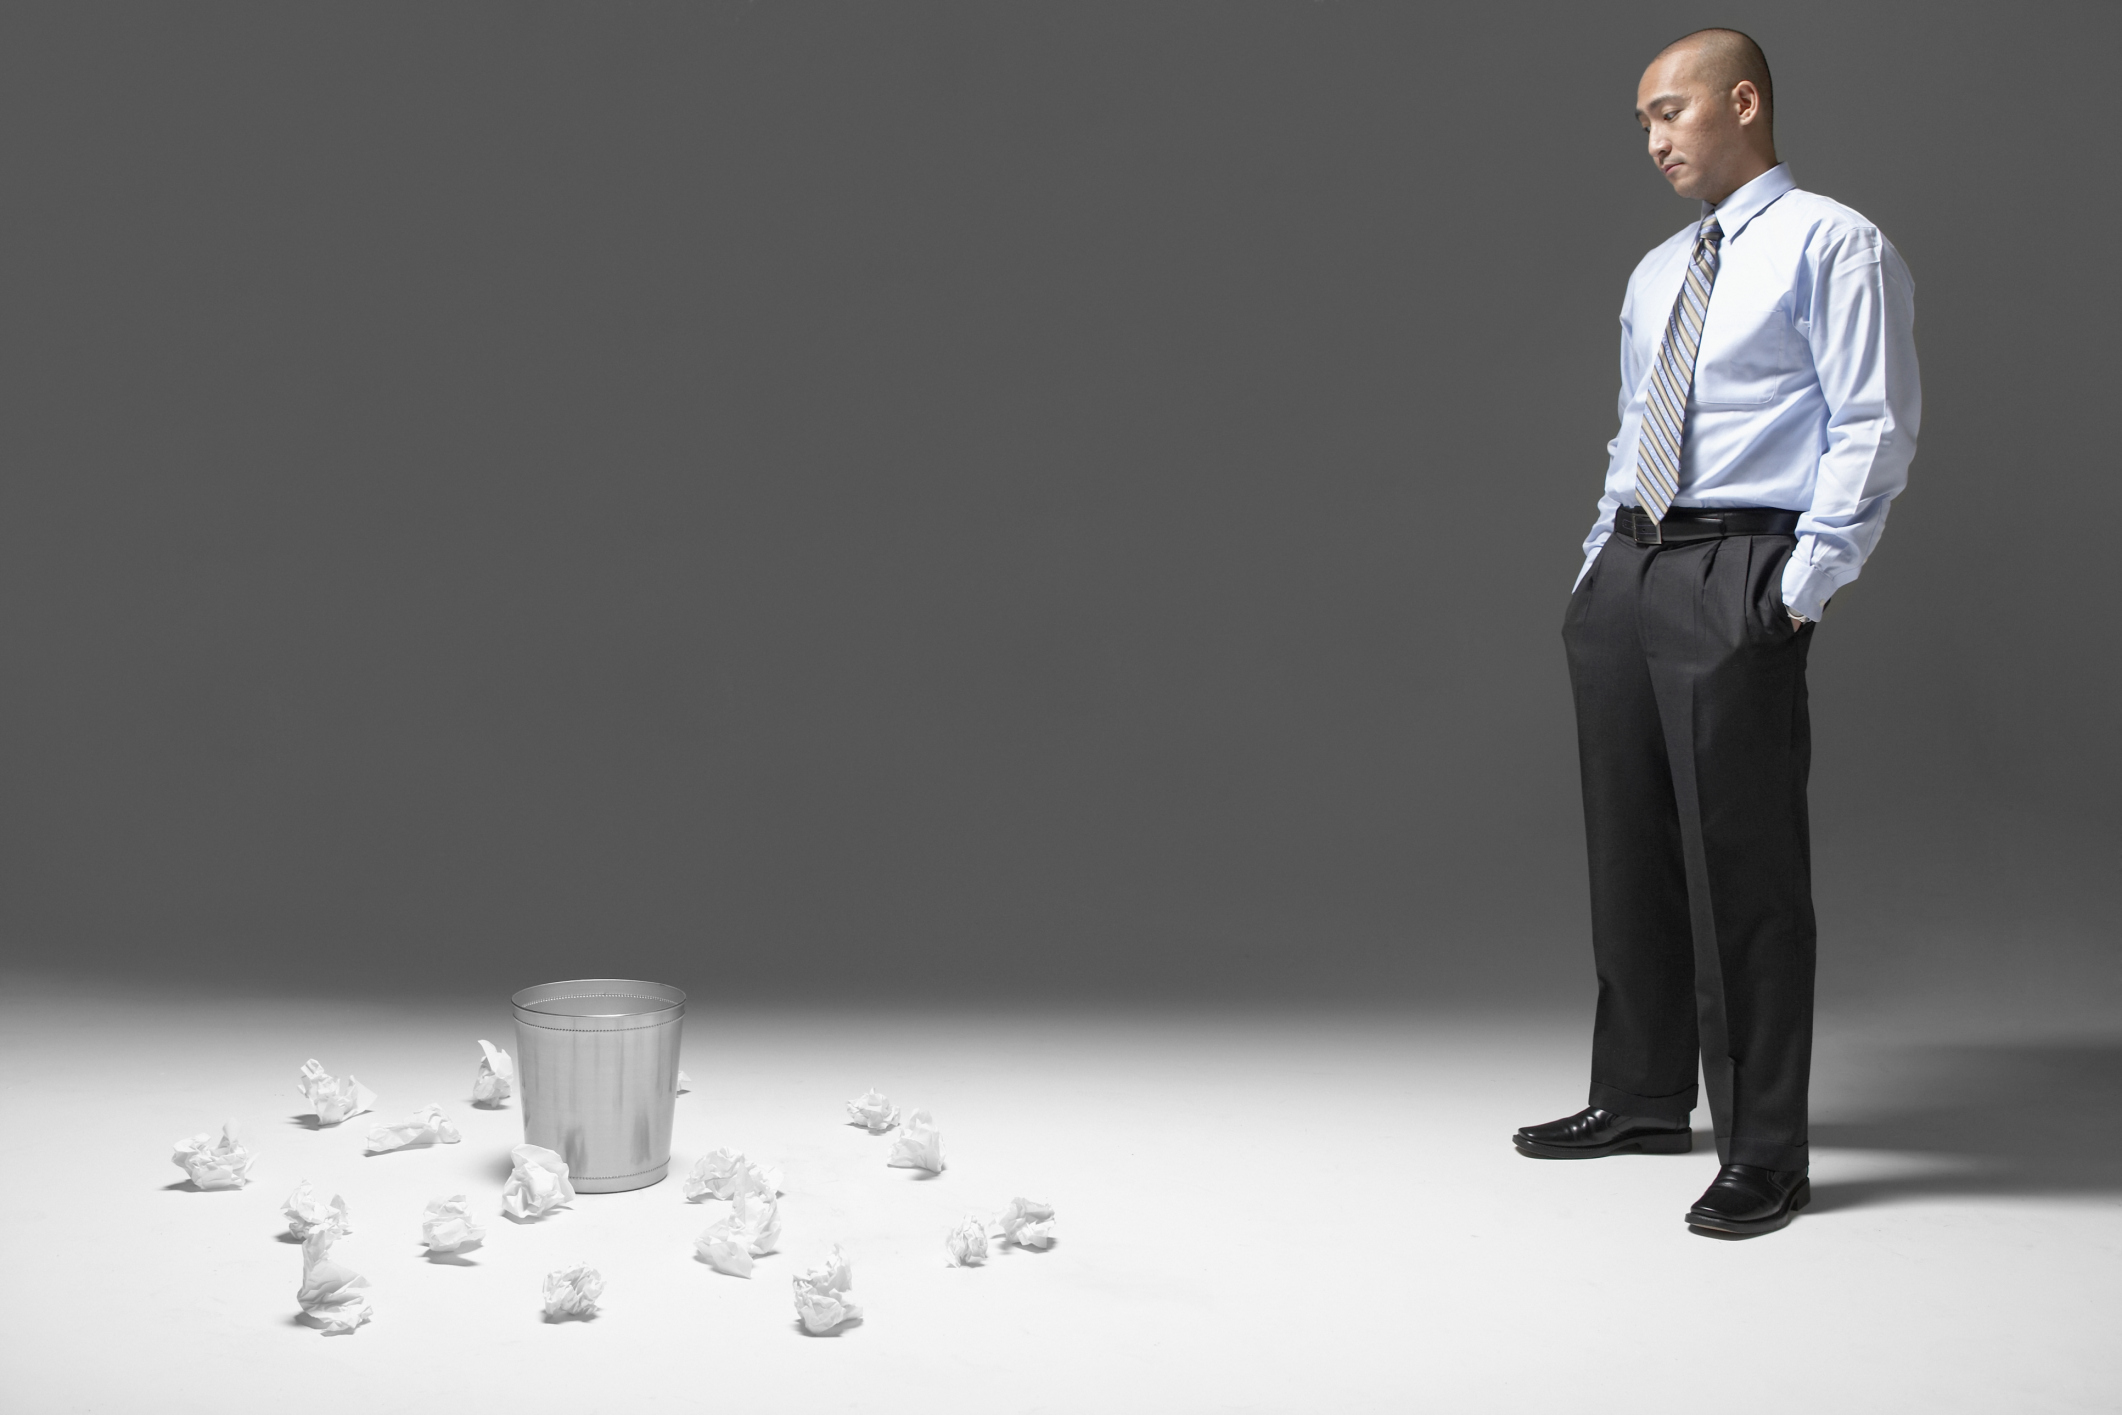 Businessman with hands in pockets, looking at waste paper basket